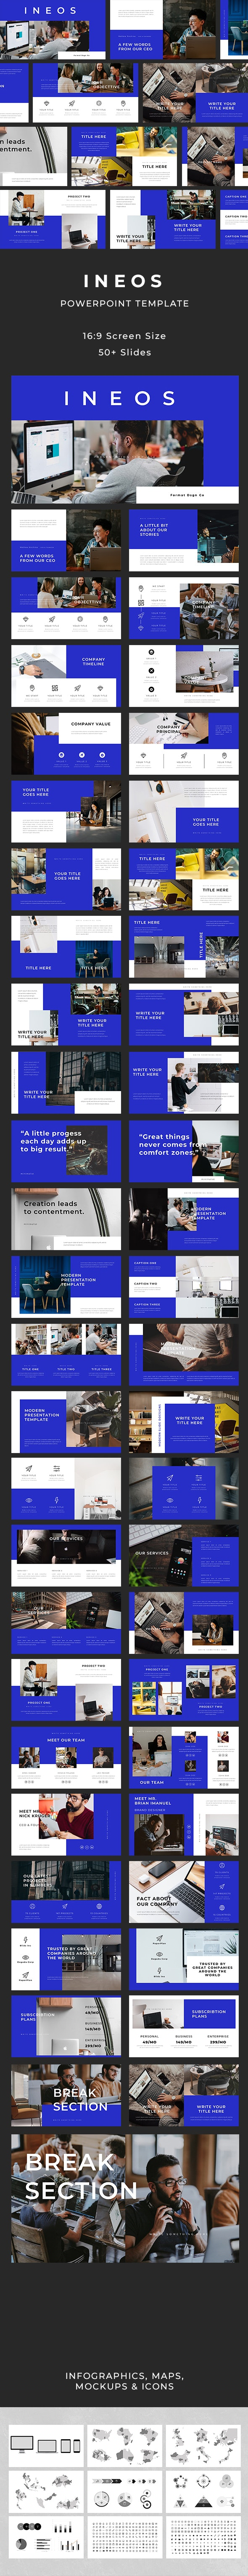 Ineos PowerPoint Template - Business PowerPoint Templates